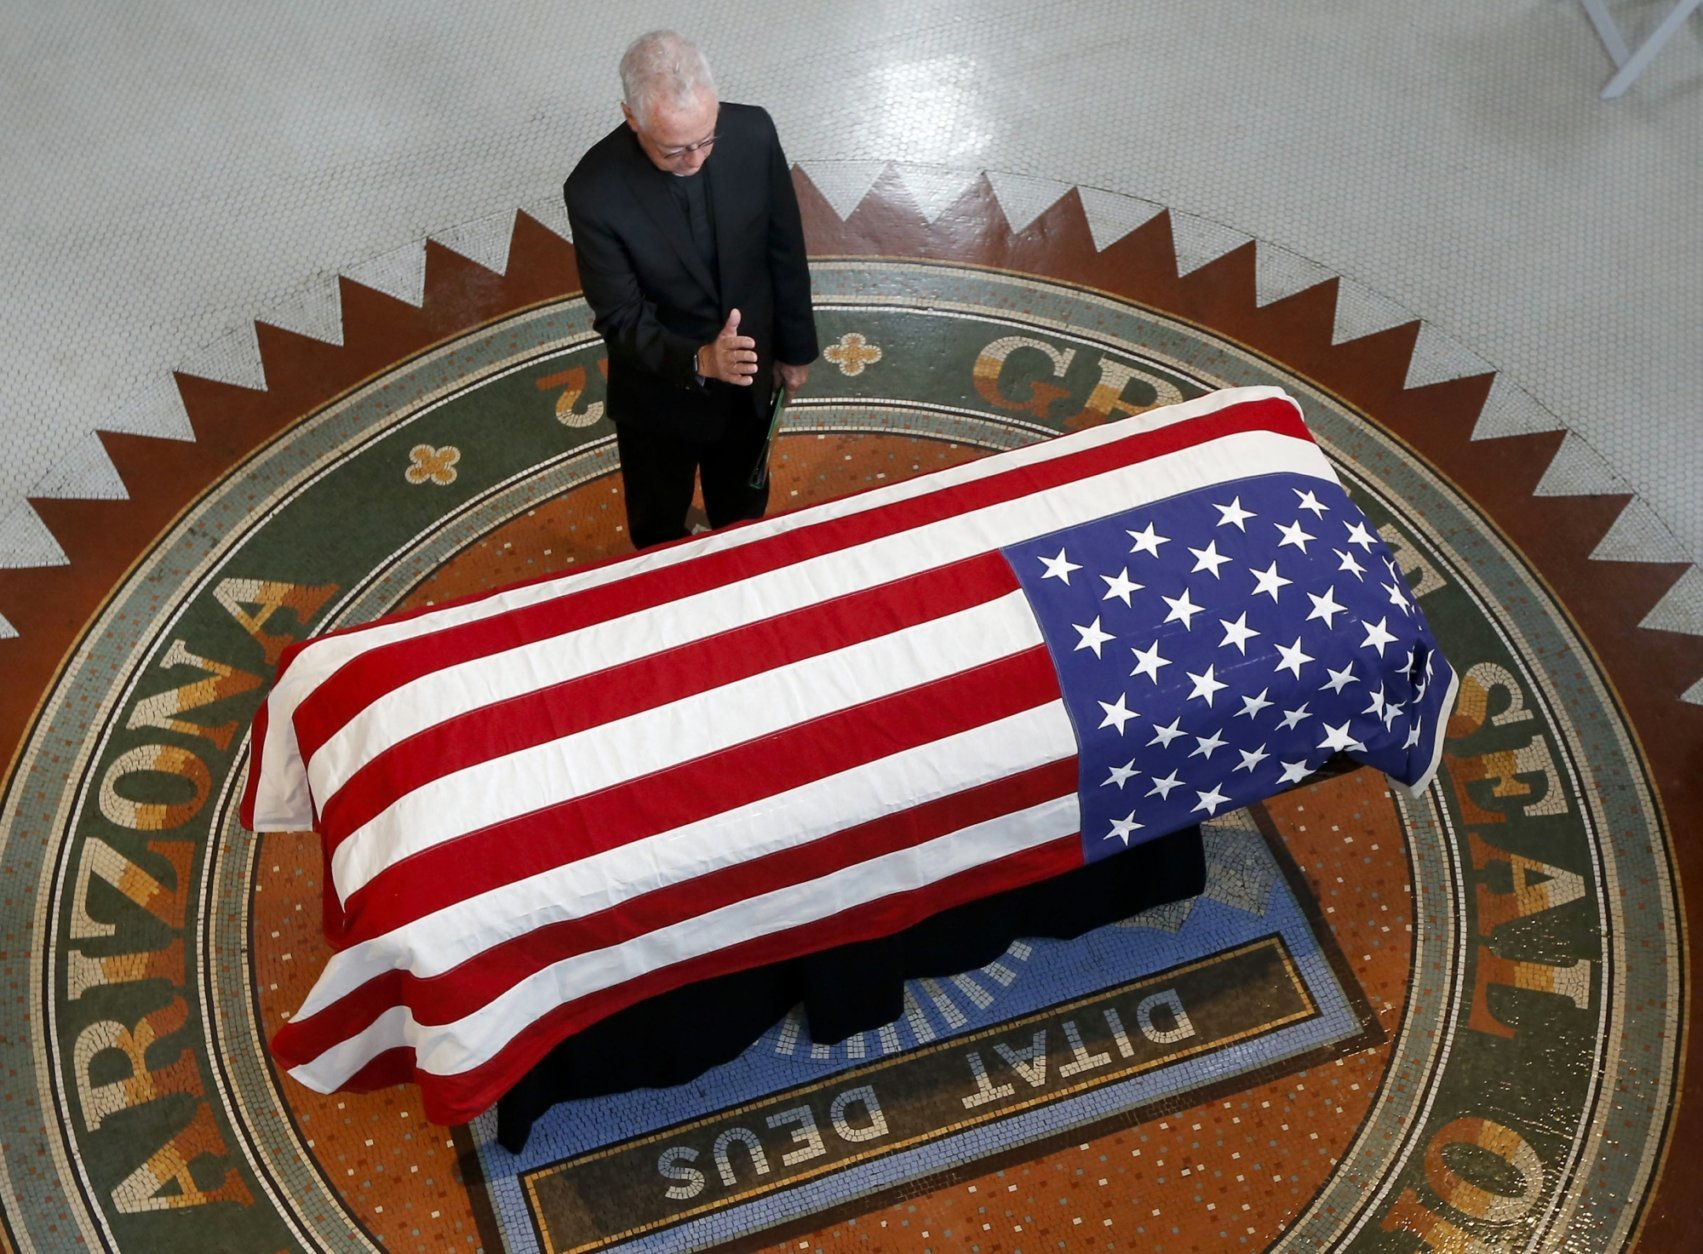 Father Edward A. Reese prays over the casket during a memorial service for Sen. John McCain, R-Ariz. at the Arizona Capitol on Wednesday, Aug. 29, 2018, in Phoenix. (AP Photo/Ross D. Franklin, Pool)